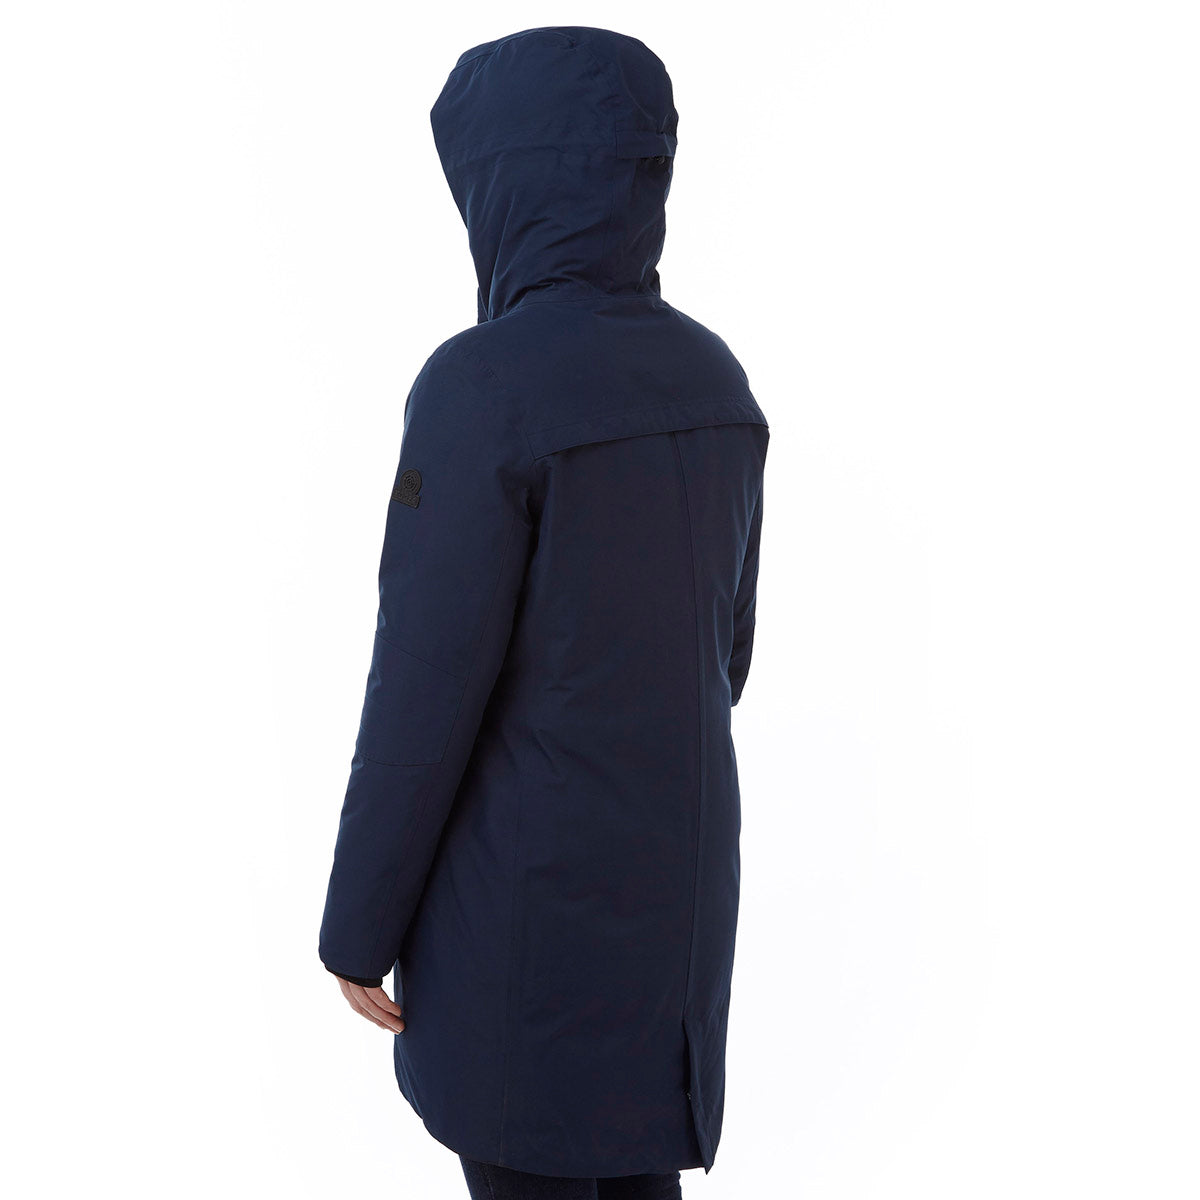 Luxe Womens Milatex/Down Jacket - Navy image 4